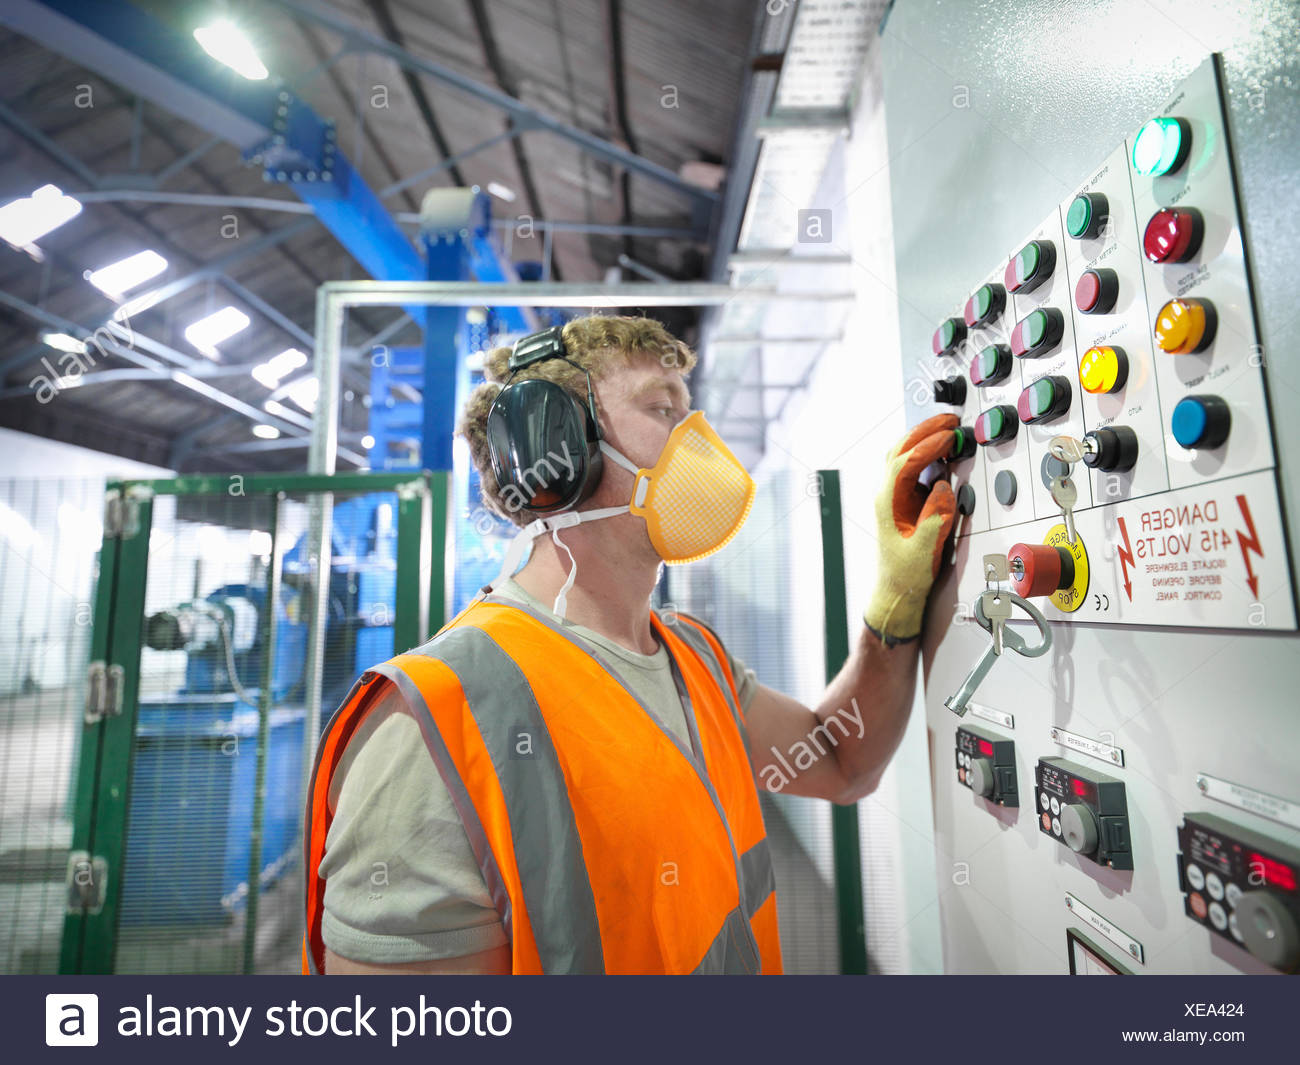 Worker at controls of metal ore grinding mill - Stock Image